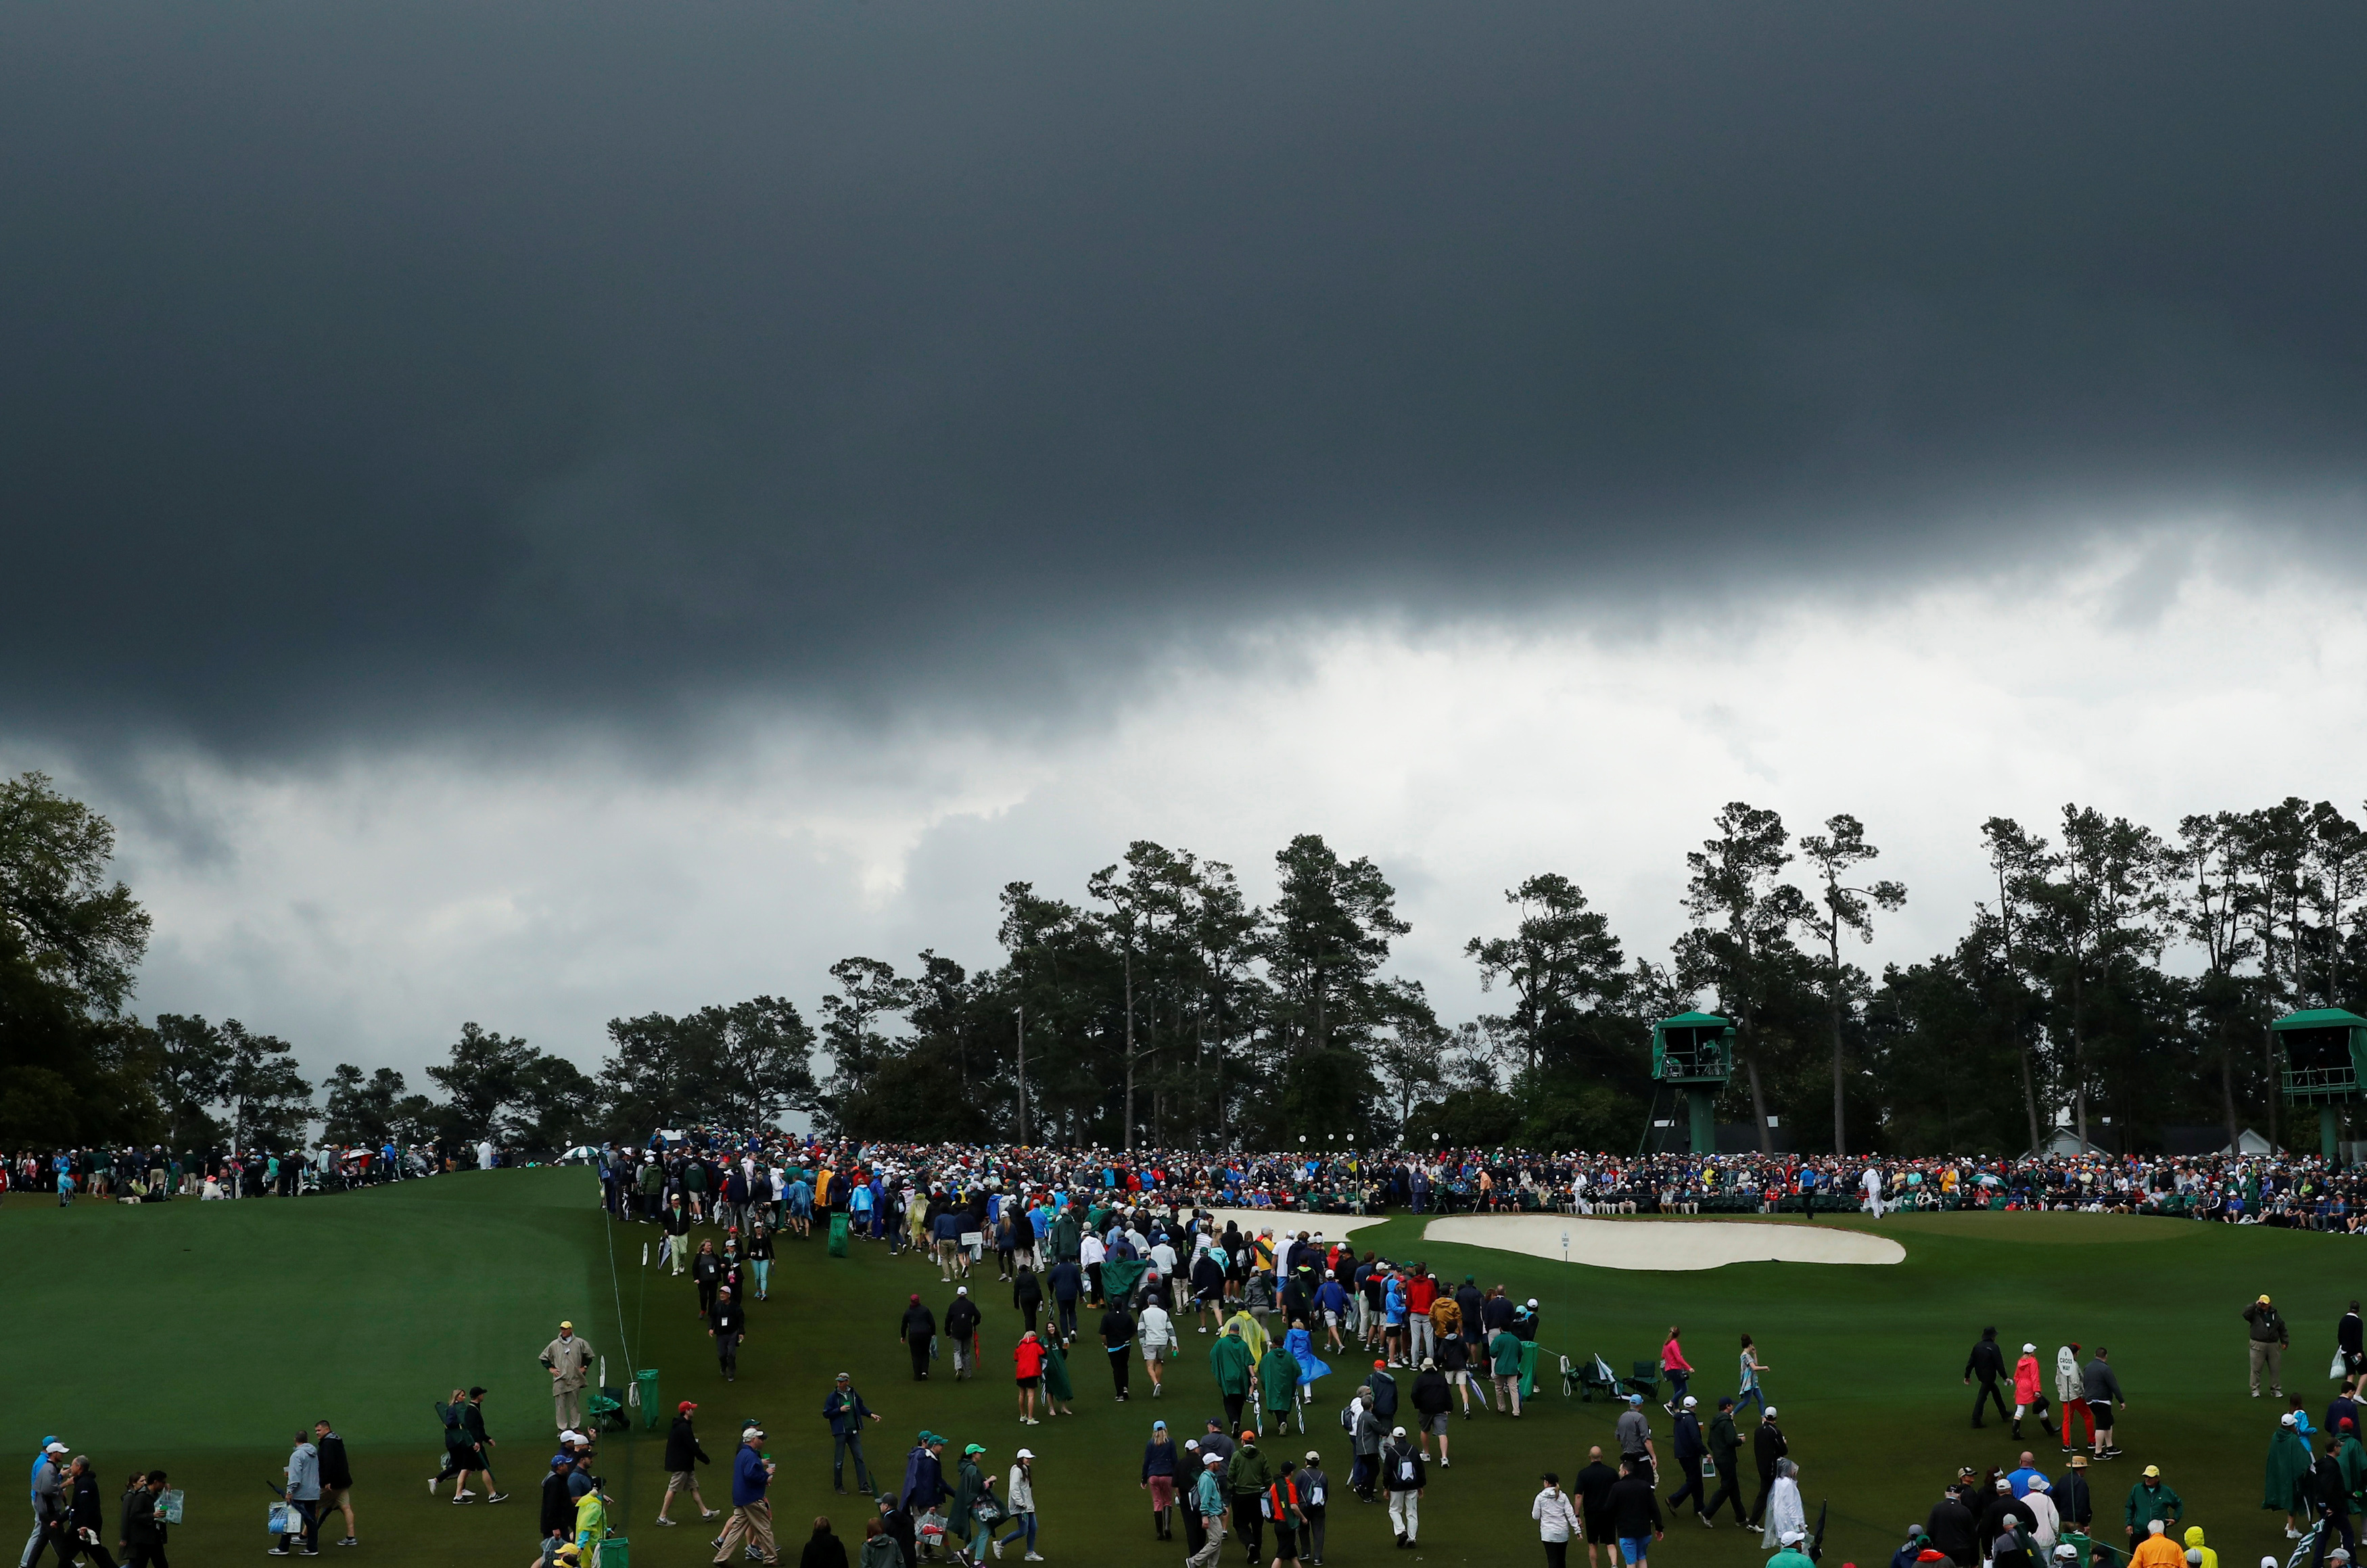 FILE PHOTO: Stormy skies loom over the course during third round play of the 2018 Masters golf tournament at the Augusta National Golf Club in Augusta, Georgia, U.S. April 7, 2018. REUTERS/Mike Segar/File Photo